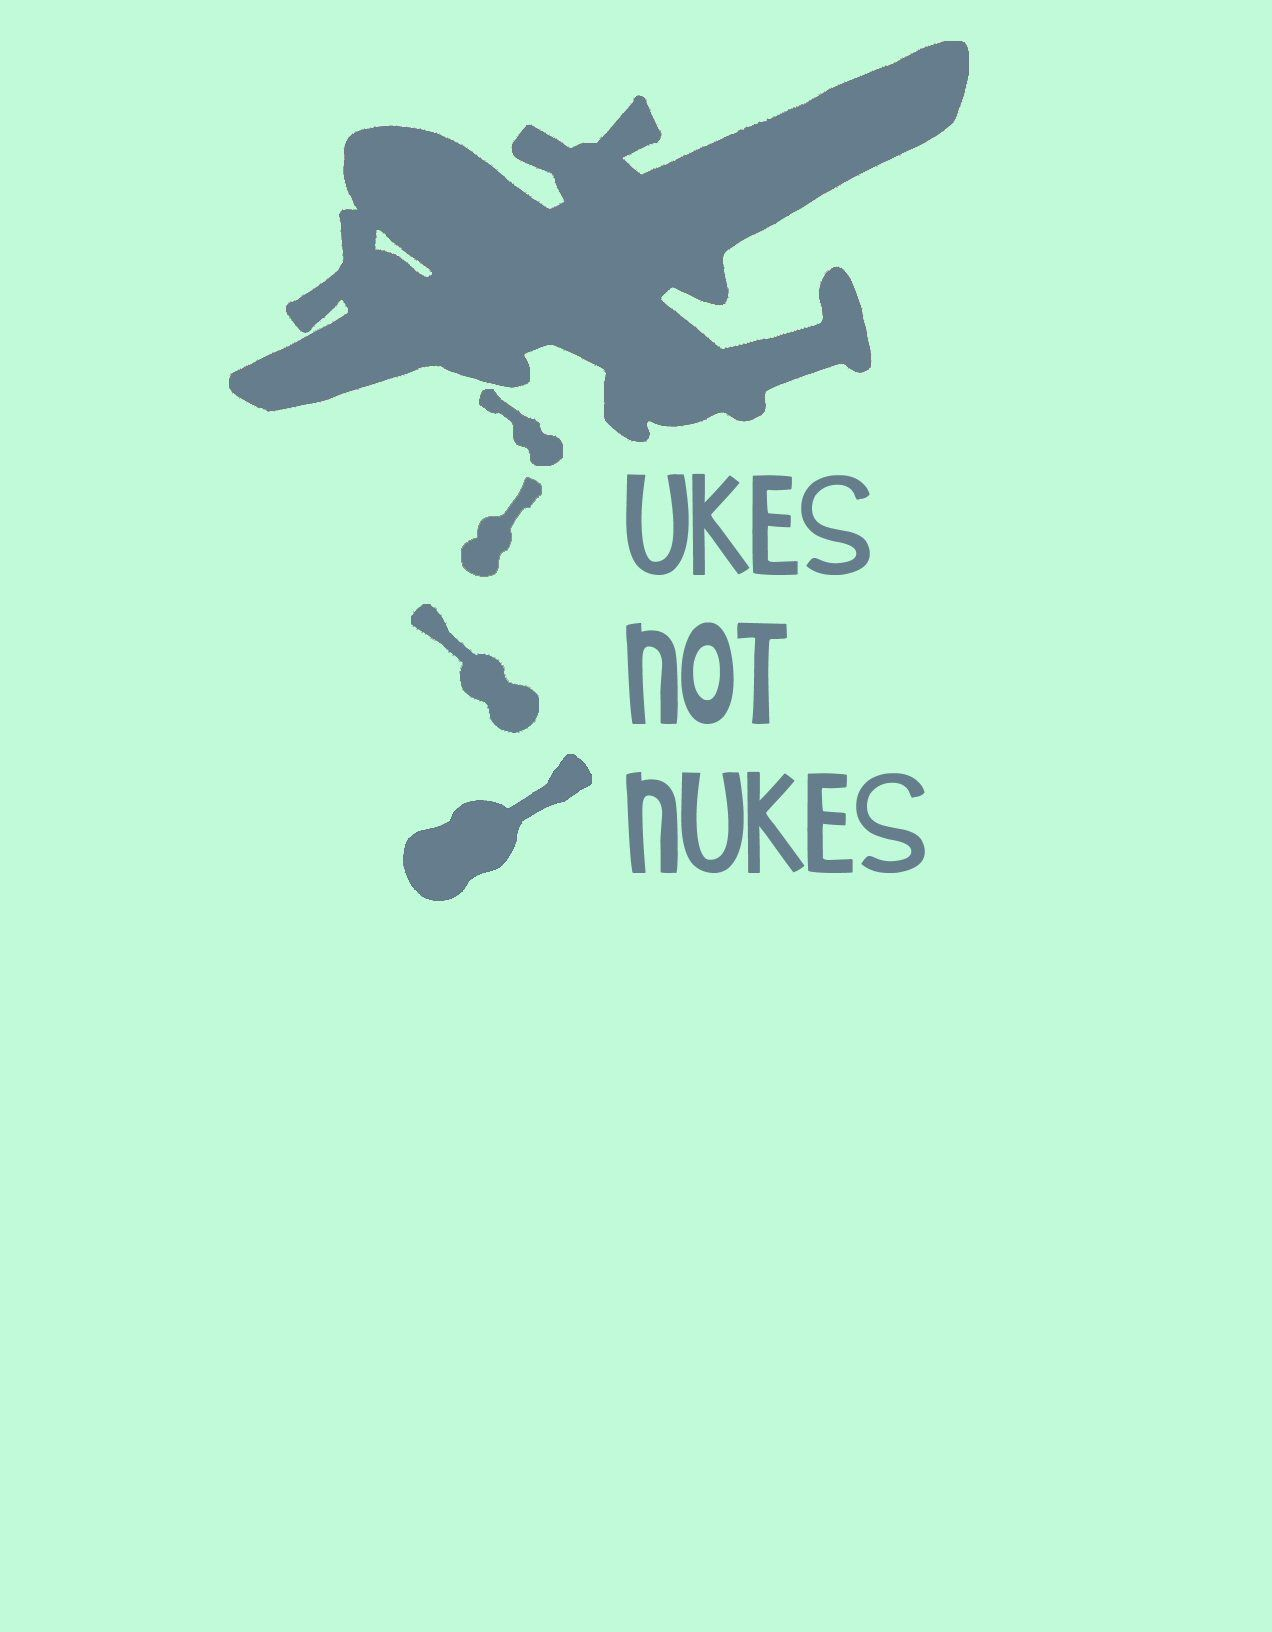 Moon Booots My Ukes Not Nukes Drawing Drawings Home Decor Decals Artsy [ 1632 x 1272 Pixel ]